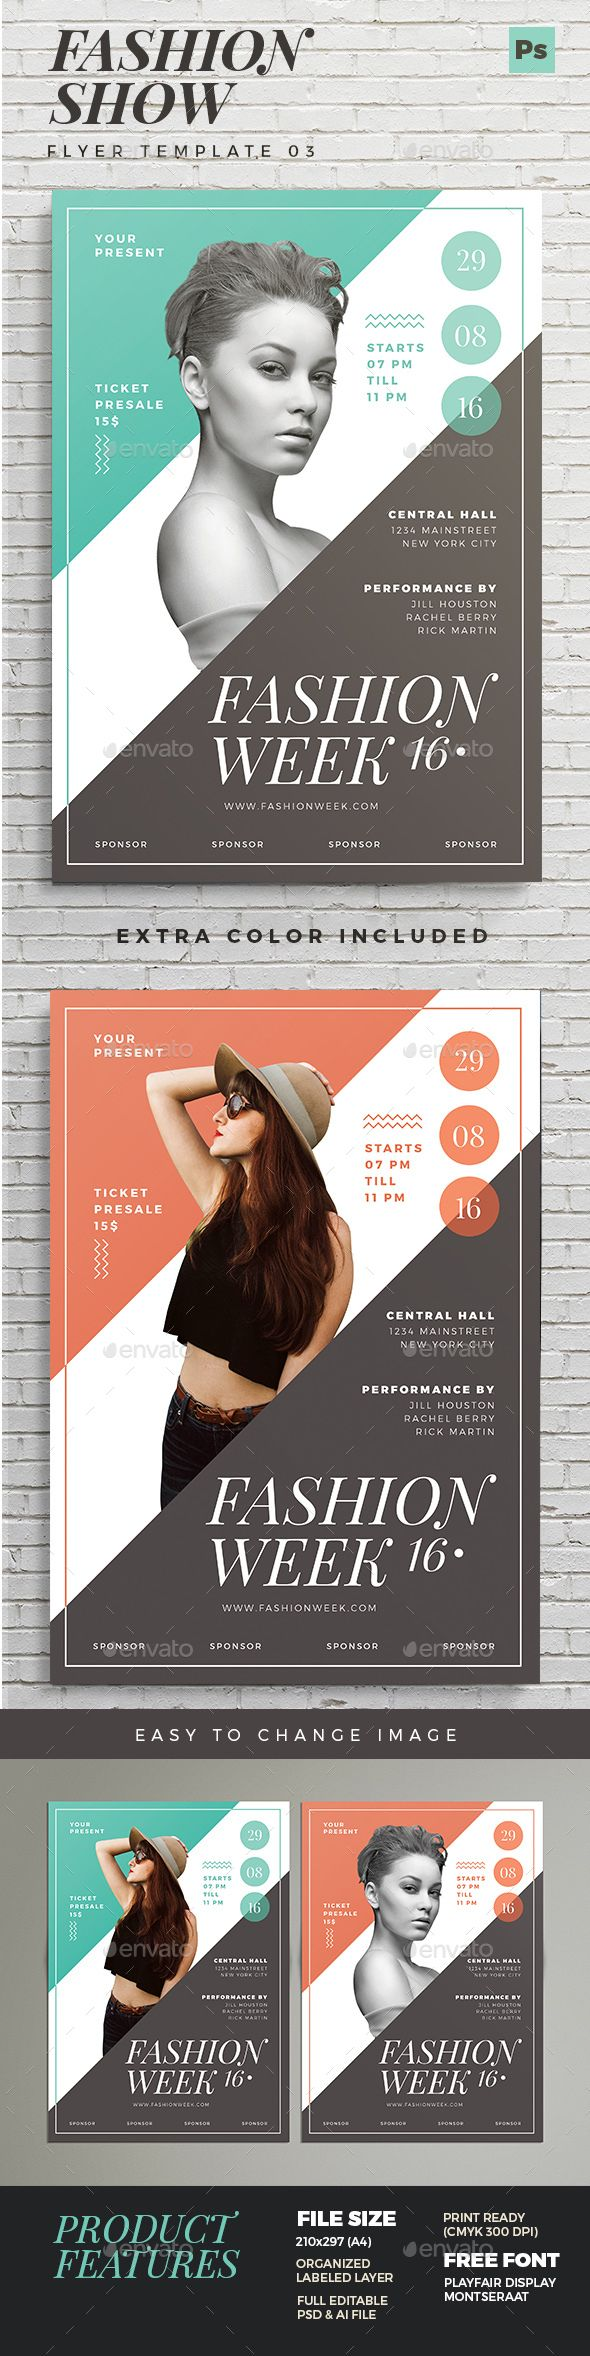 Fashion Show Flyer Design 03 - Events Flyer Template PSD. Download here: http://graphicriver.net/item/fashion-show-flyer-03/16703317?s_rank=72&ref=yinkira